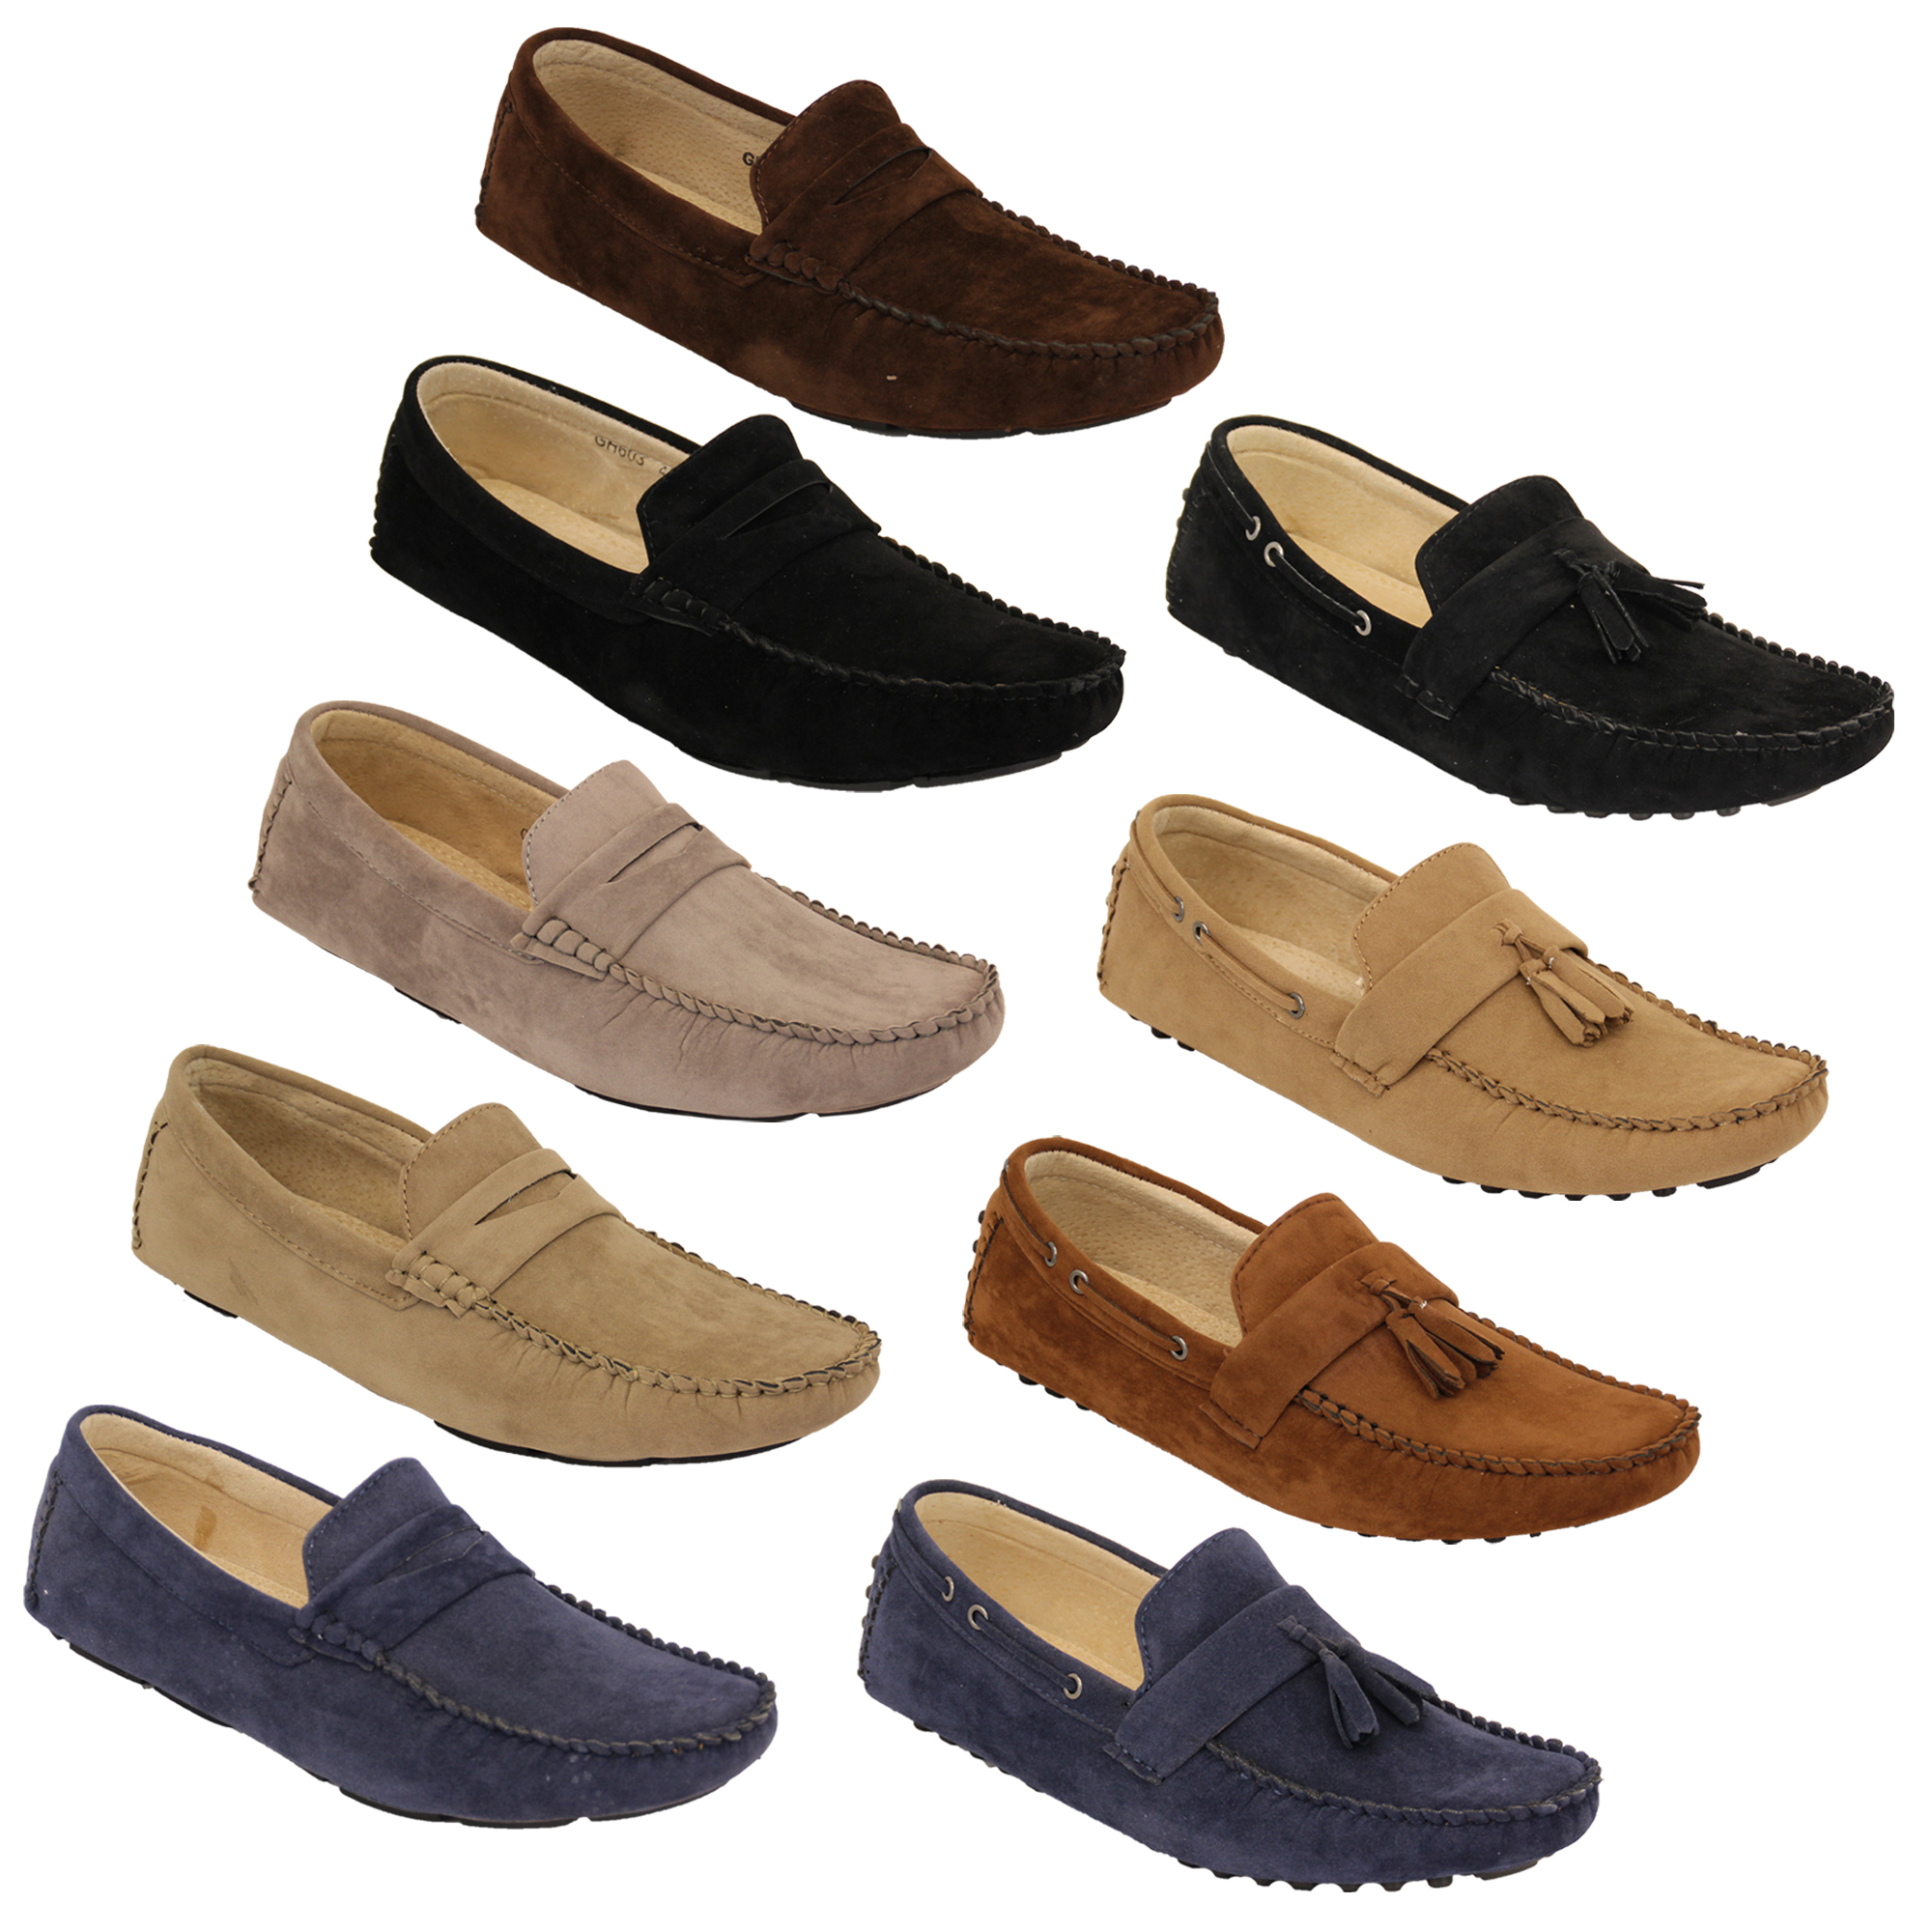 Mens-Moccasins-Suede-Leather-Look-Shoes-Boat-Slip-On-Tassel-Loafers-Smart-Formal thumbnail 5